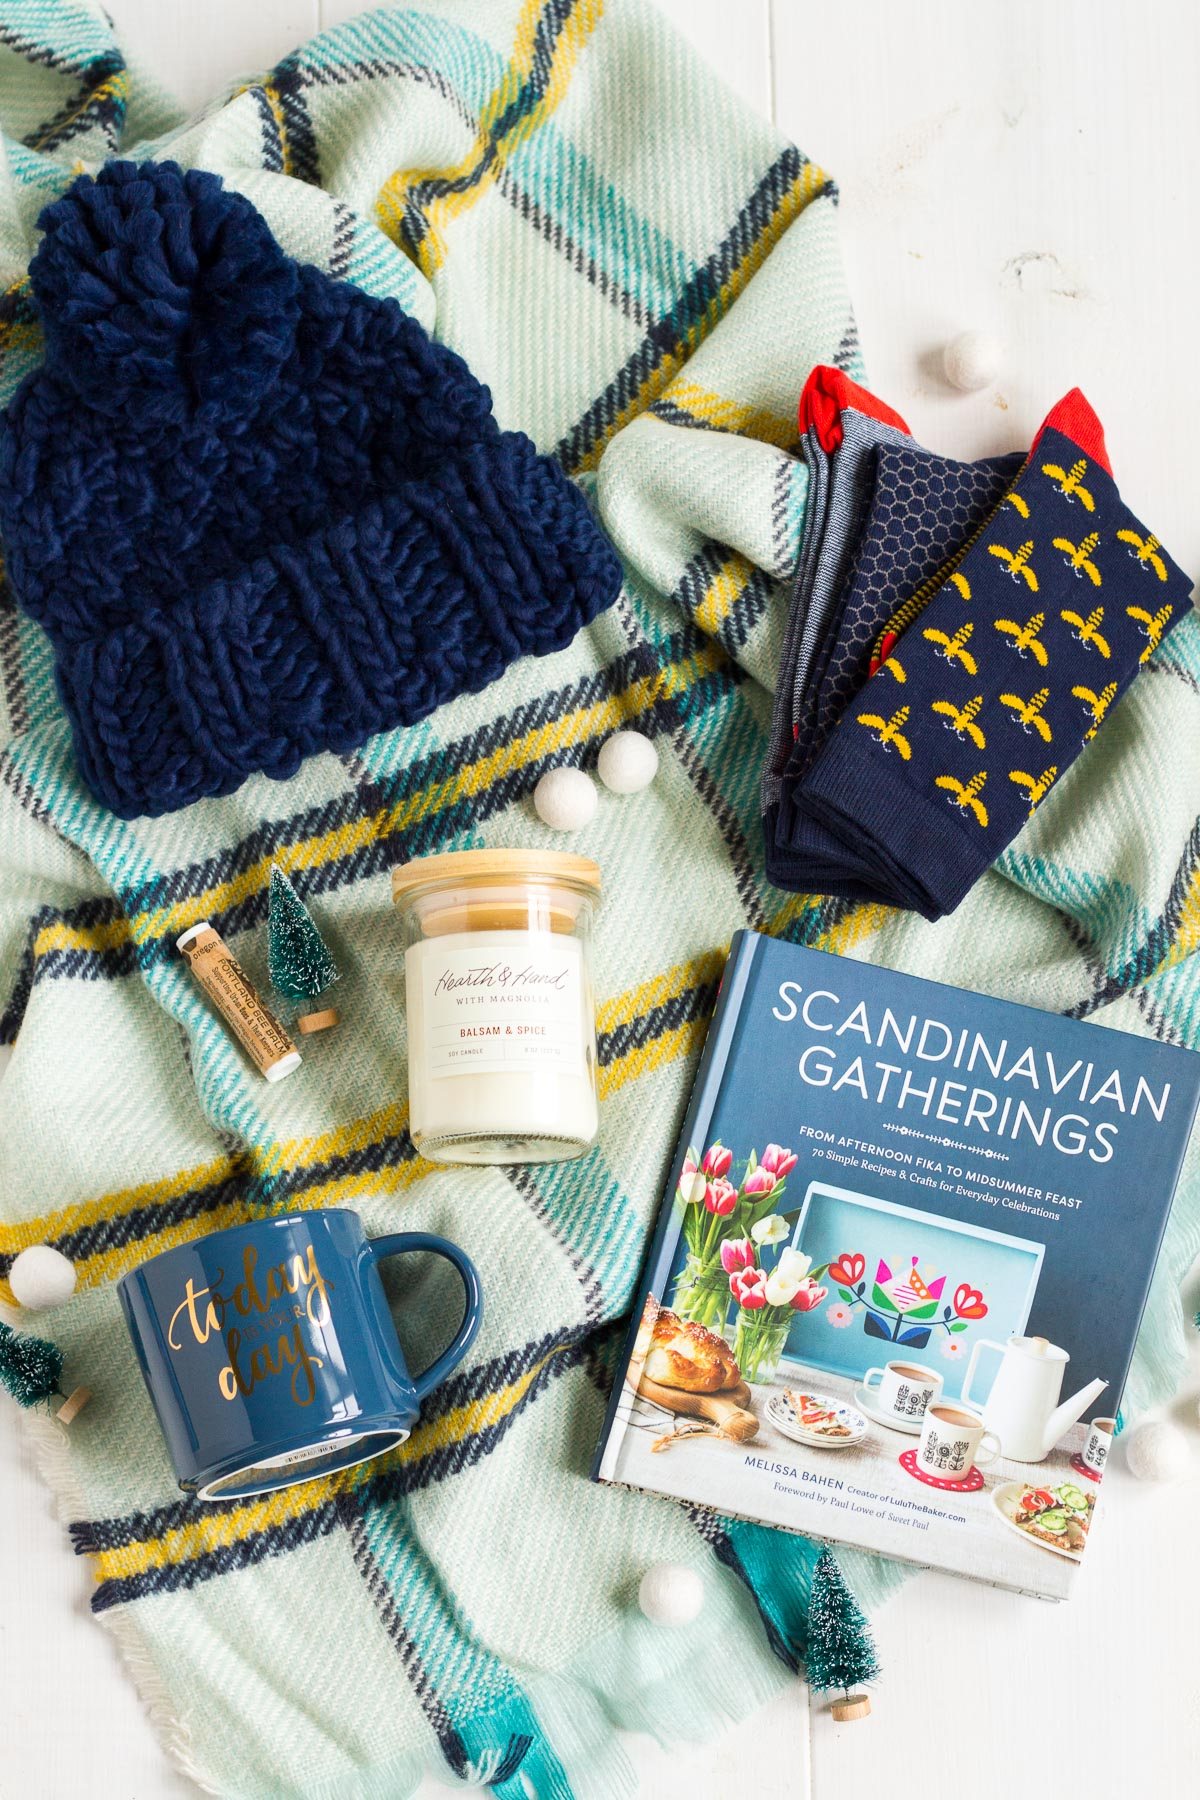 Enter to win a box of my cozy hygge favorites on the My Favorite Things Giveaway on Lulu the Baker today!